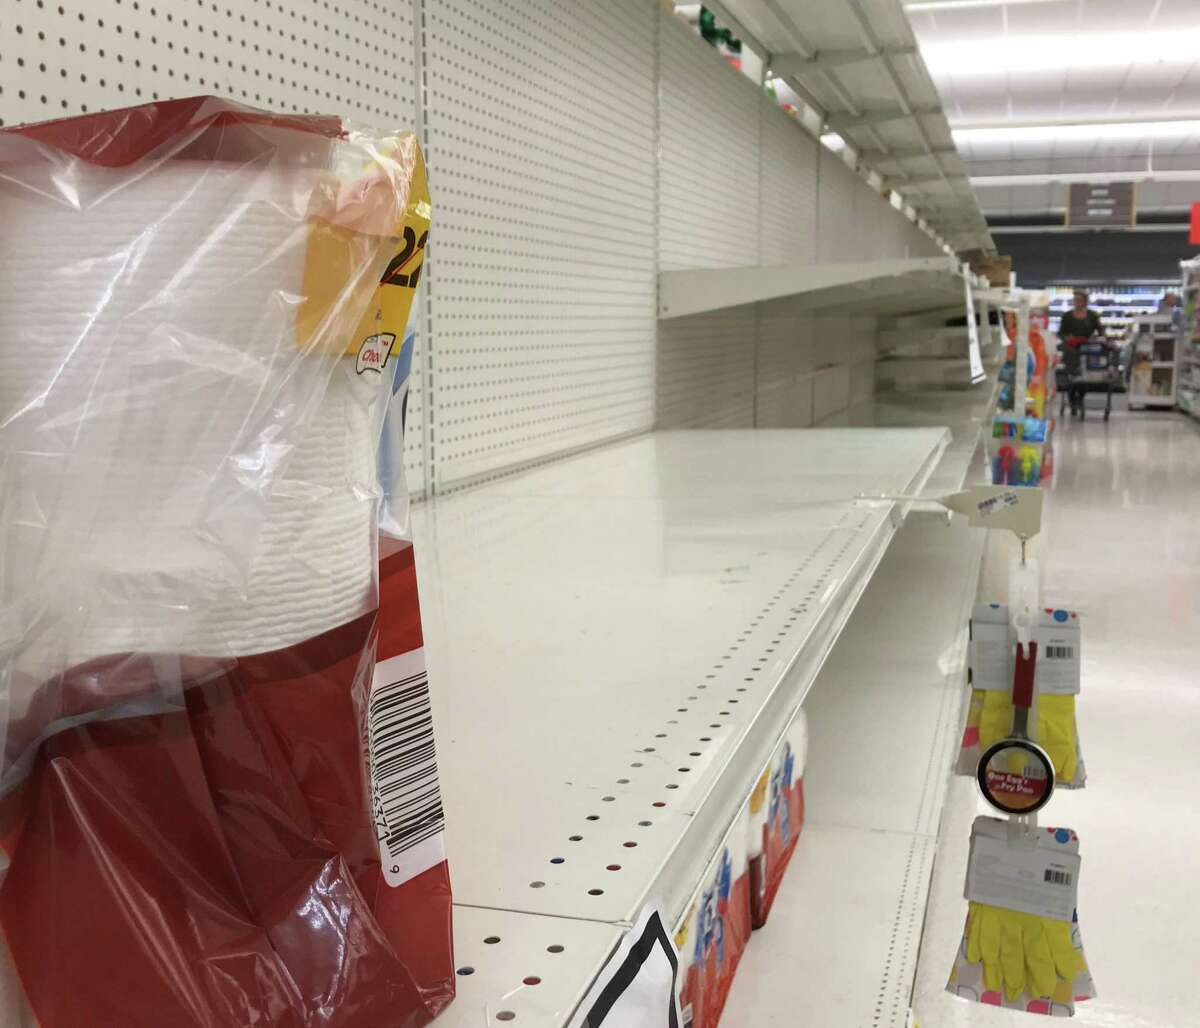 A few remaining packages of paper towels were quickly scooped up early Wednesday afternoon, March 18, 2020 at the Stop & Shop in the Ridgeway shopping center between Bedford and Summer streets in Stamford, but rolls of toilet paper were nowhere to be found. Toilet paper has been virtually gone from shelves citywide since shoppers began stocking up in response to the coronavirus outbreak.